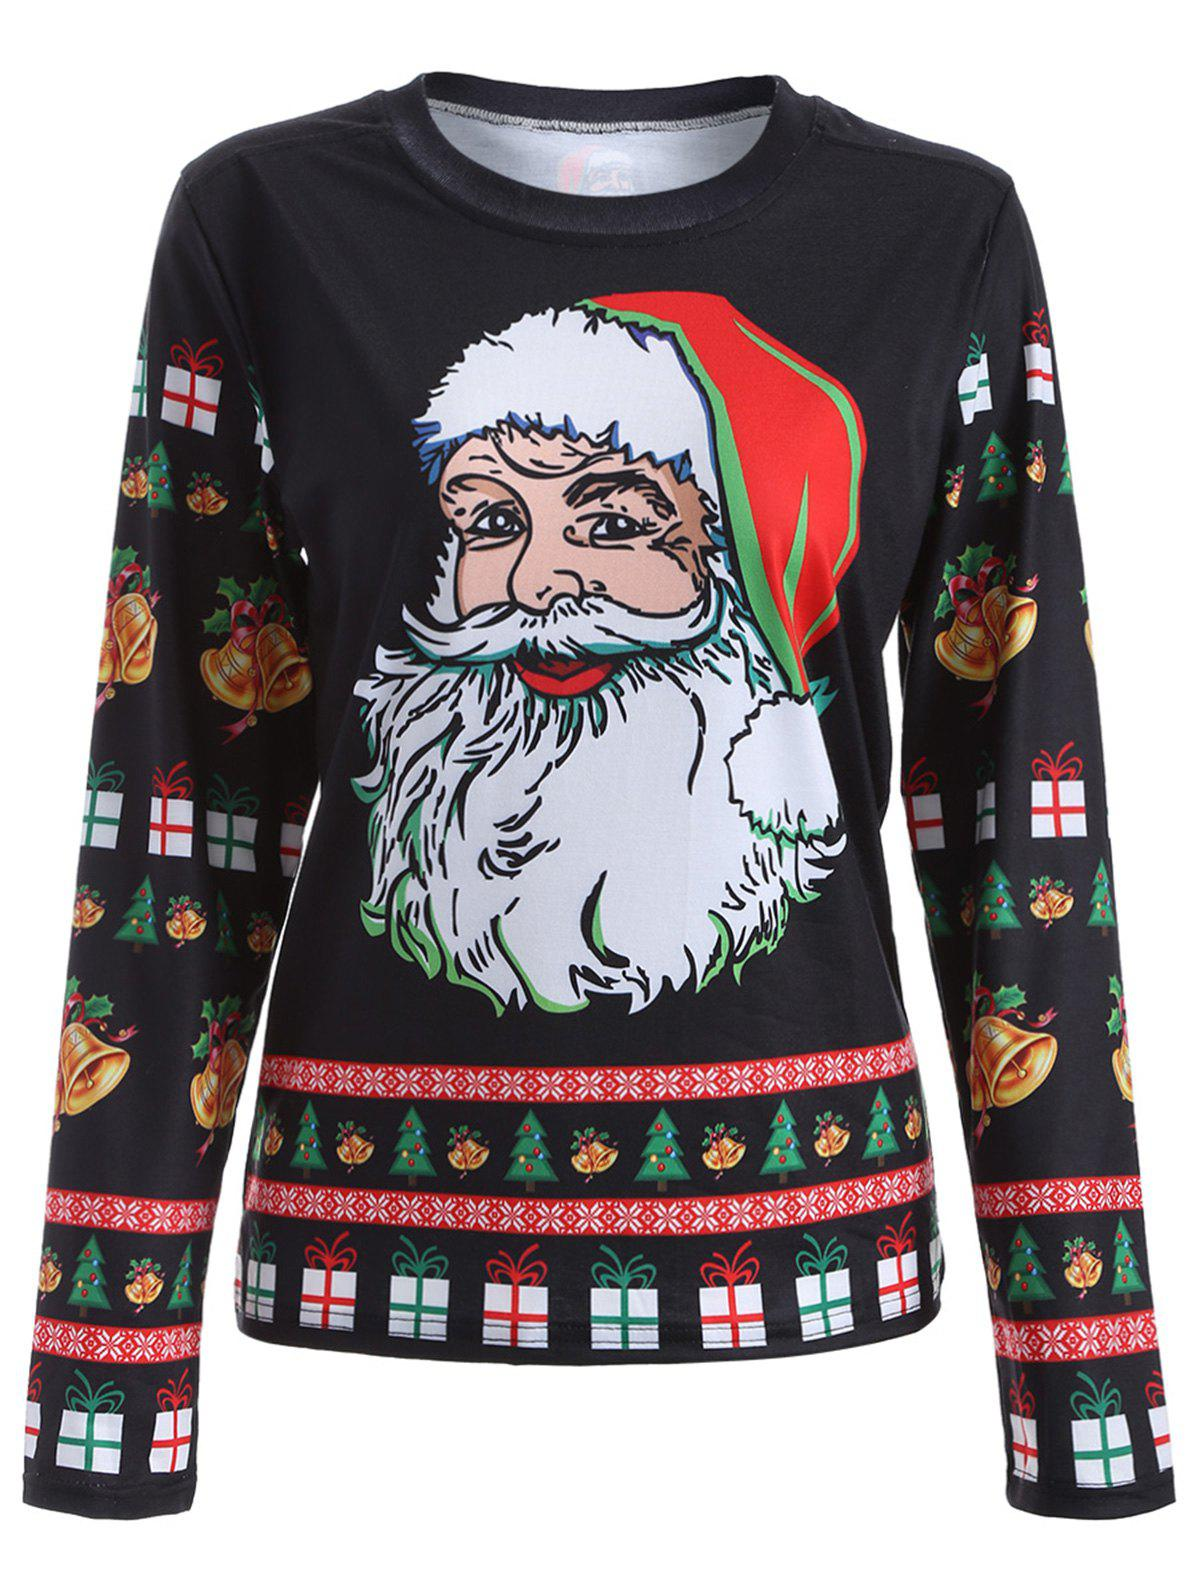 Cute Long Sleeve 3D Santa Claus Print Christmas T-ShirtWOMEN<br><br>Size: XL; Color: BLACK; Material: Polyester; Sleeve Length: Full; Collar: Round Neck; Style: Fashion; Embellishment: 3D Print; Pattern Type: Print; Season: Fall,Spring; Weight: 0.320kg; Package Contents: 1 x T-Shirt;